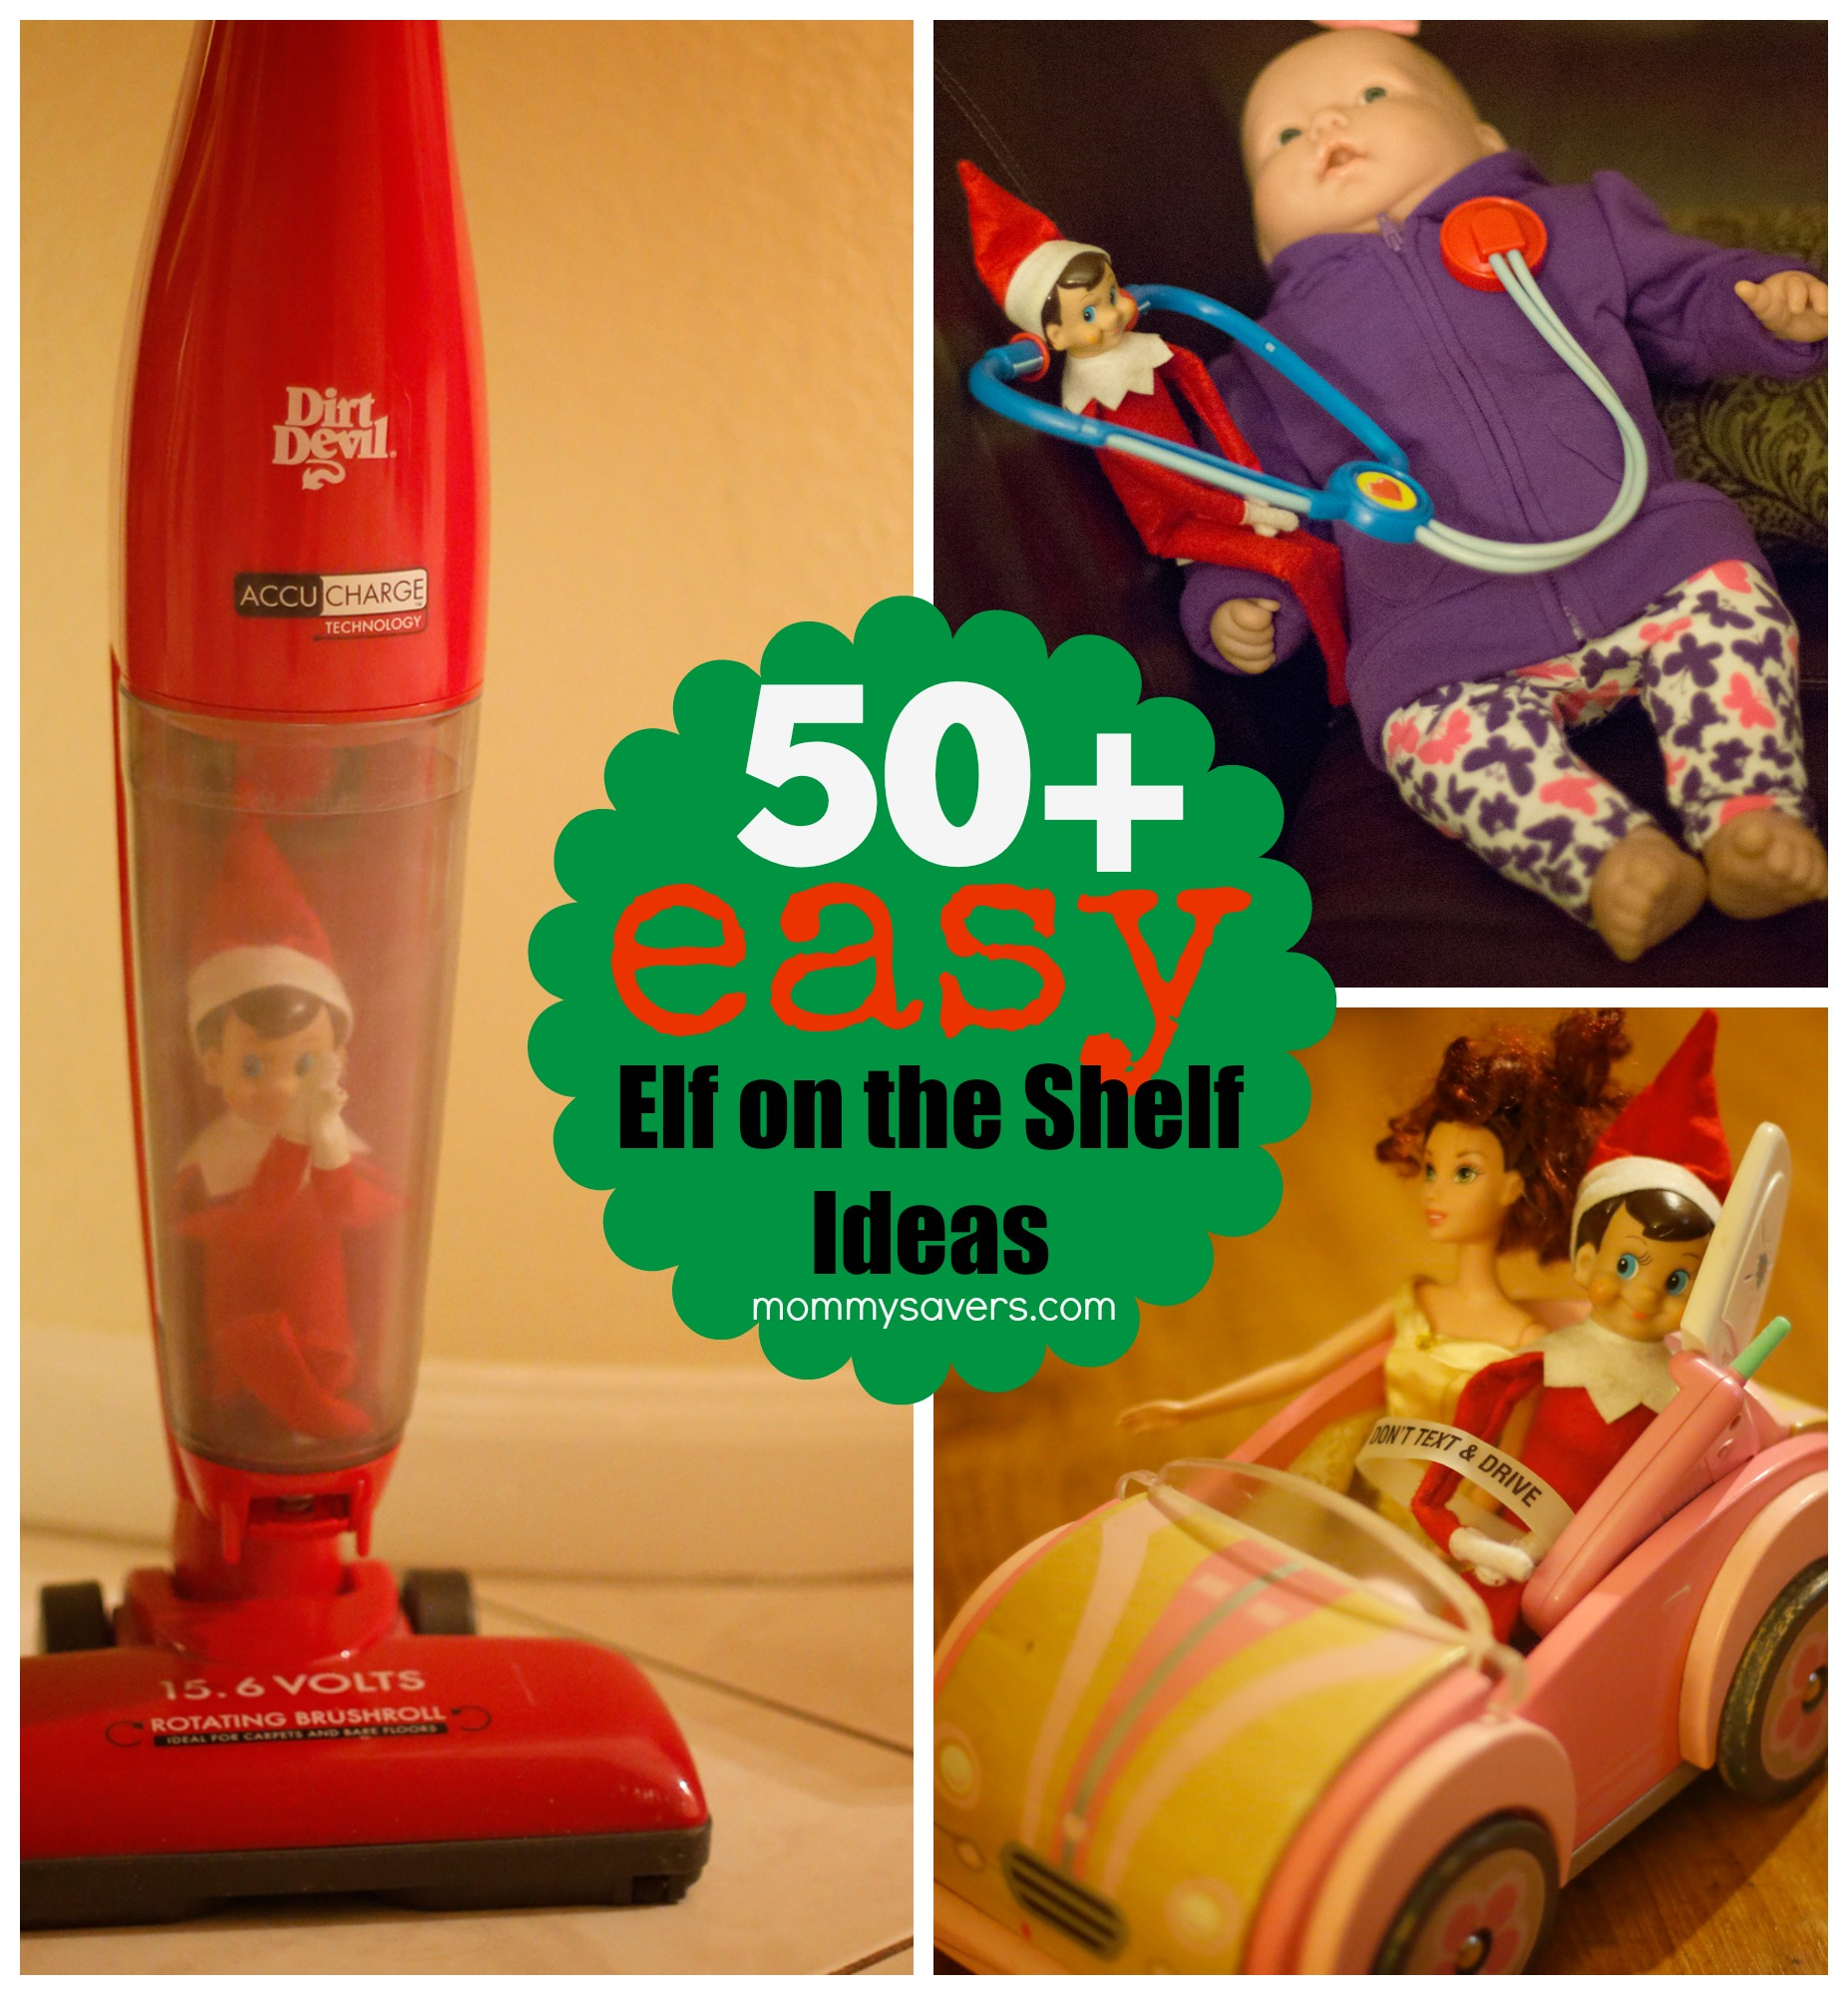 Easy Elf On The Shelf Ideas Mommysavers